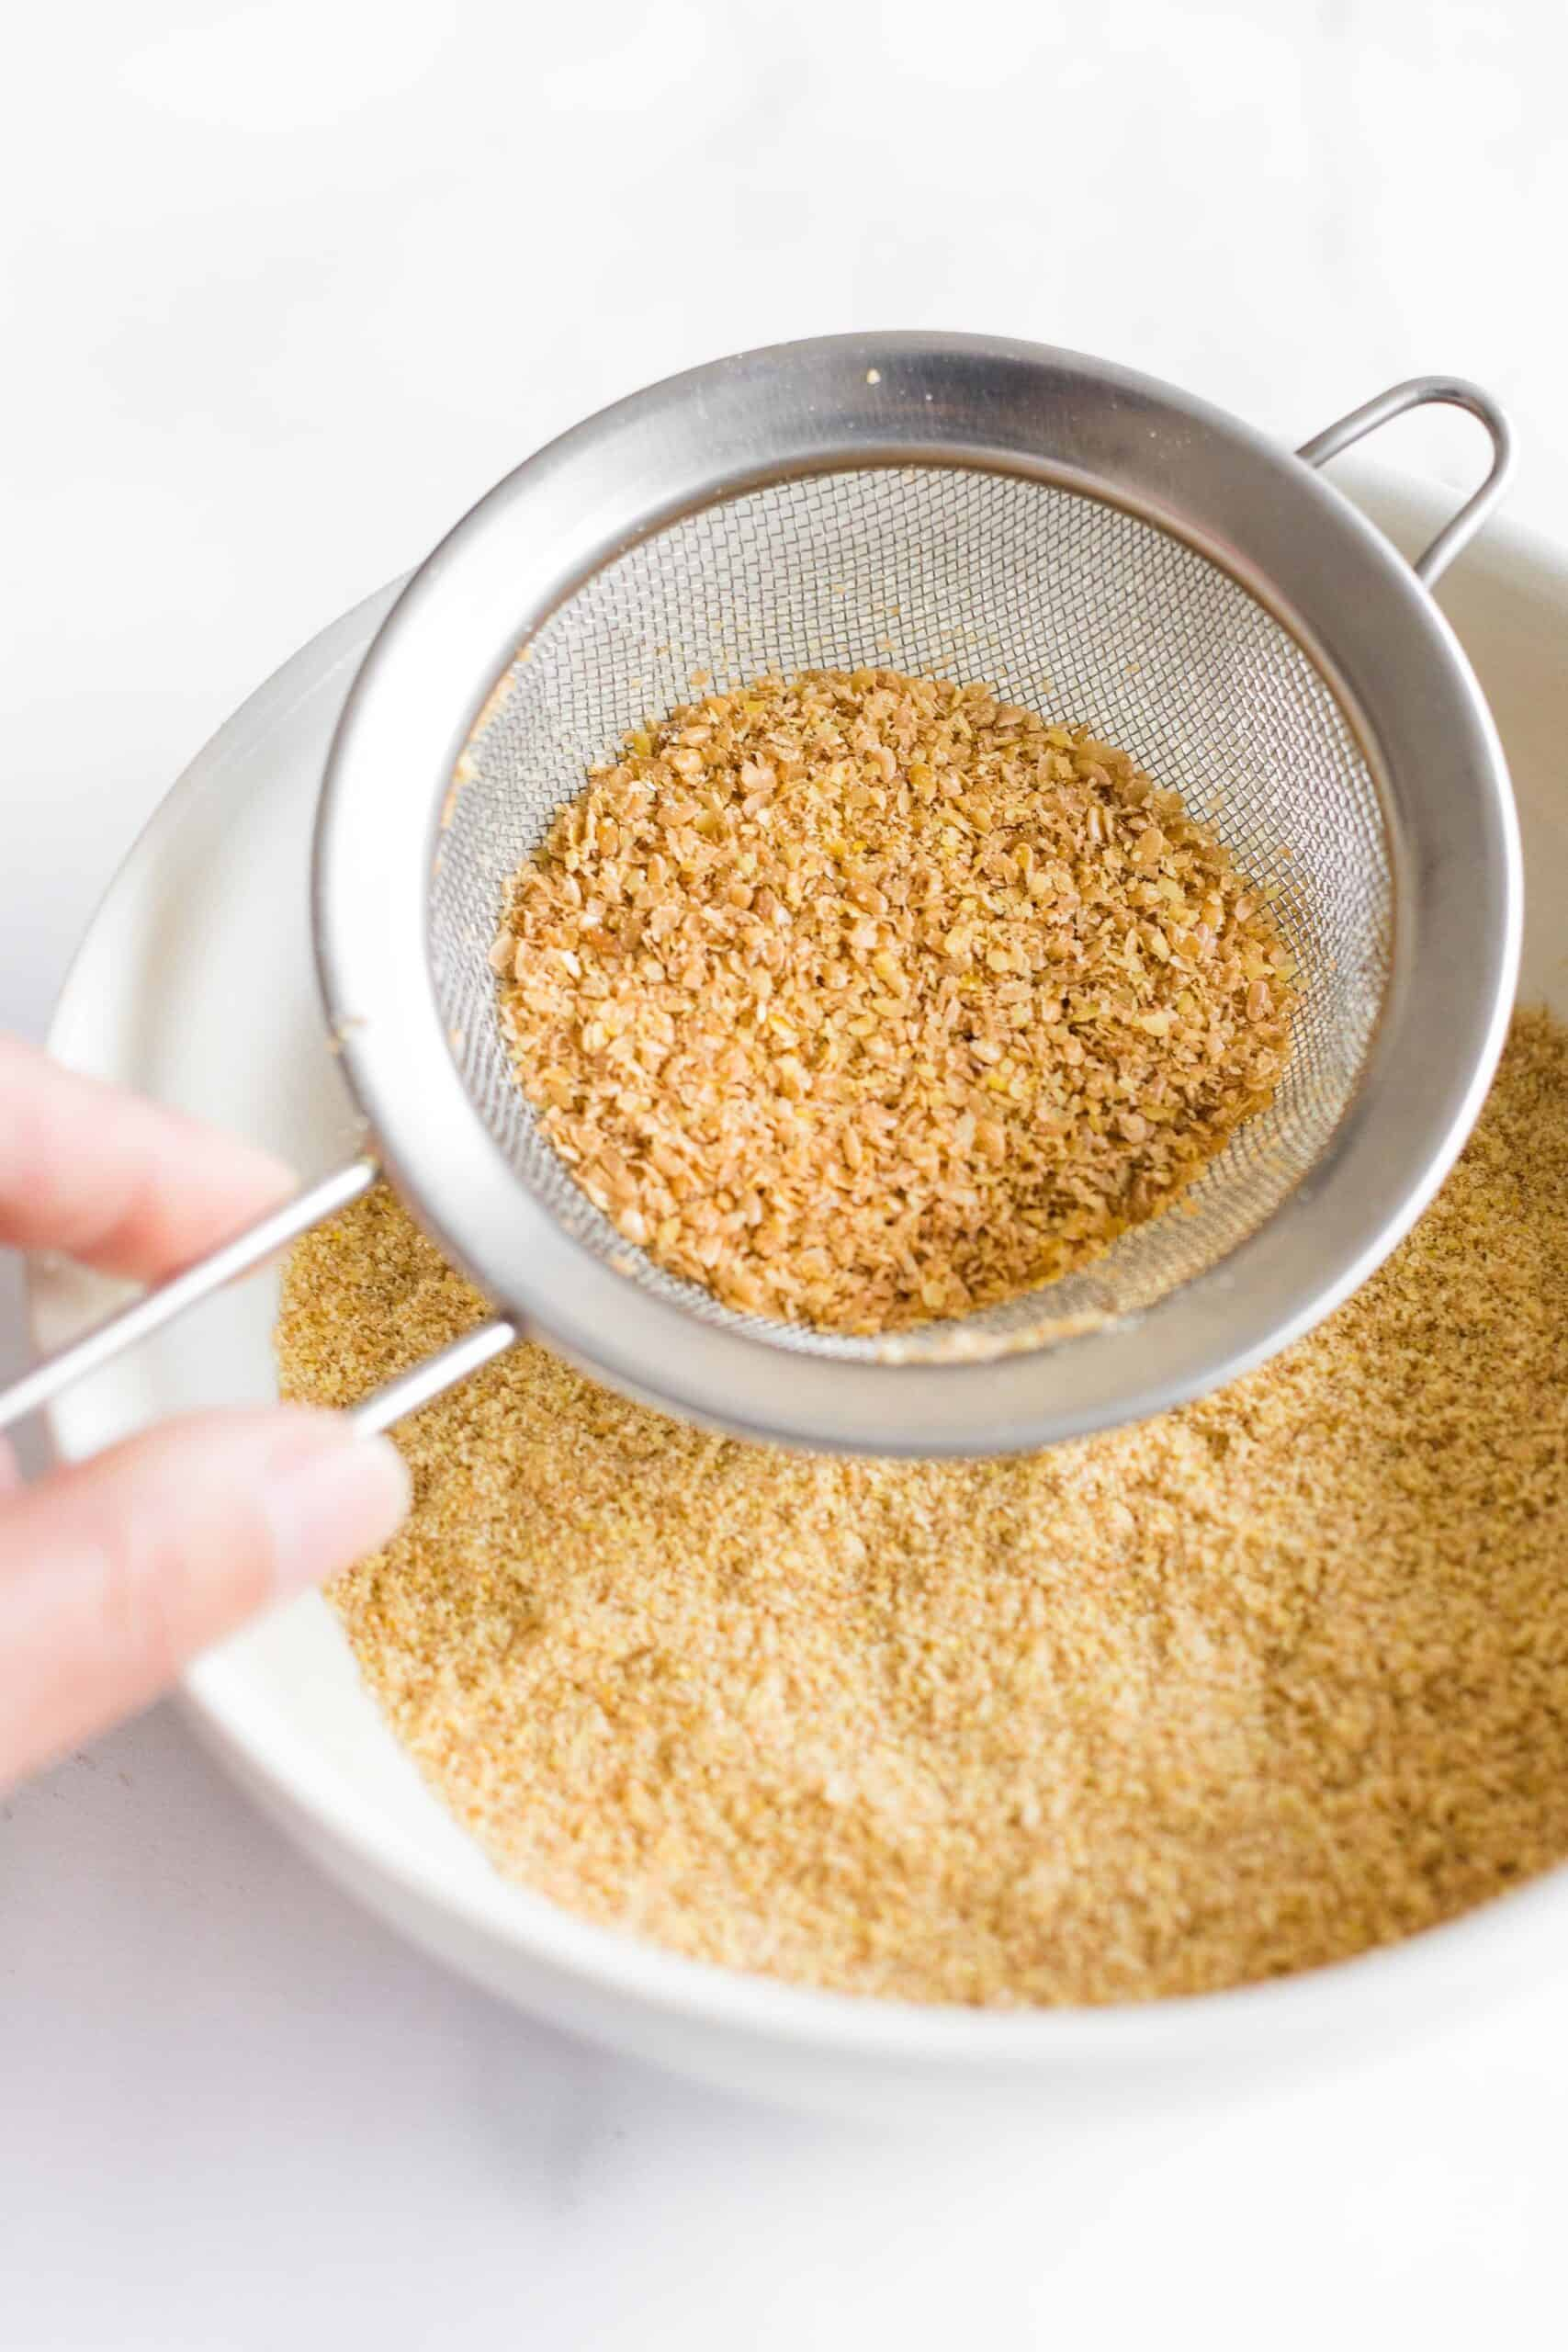 Sifting golden flaxseed meal through a fine mesh sieve.